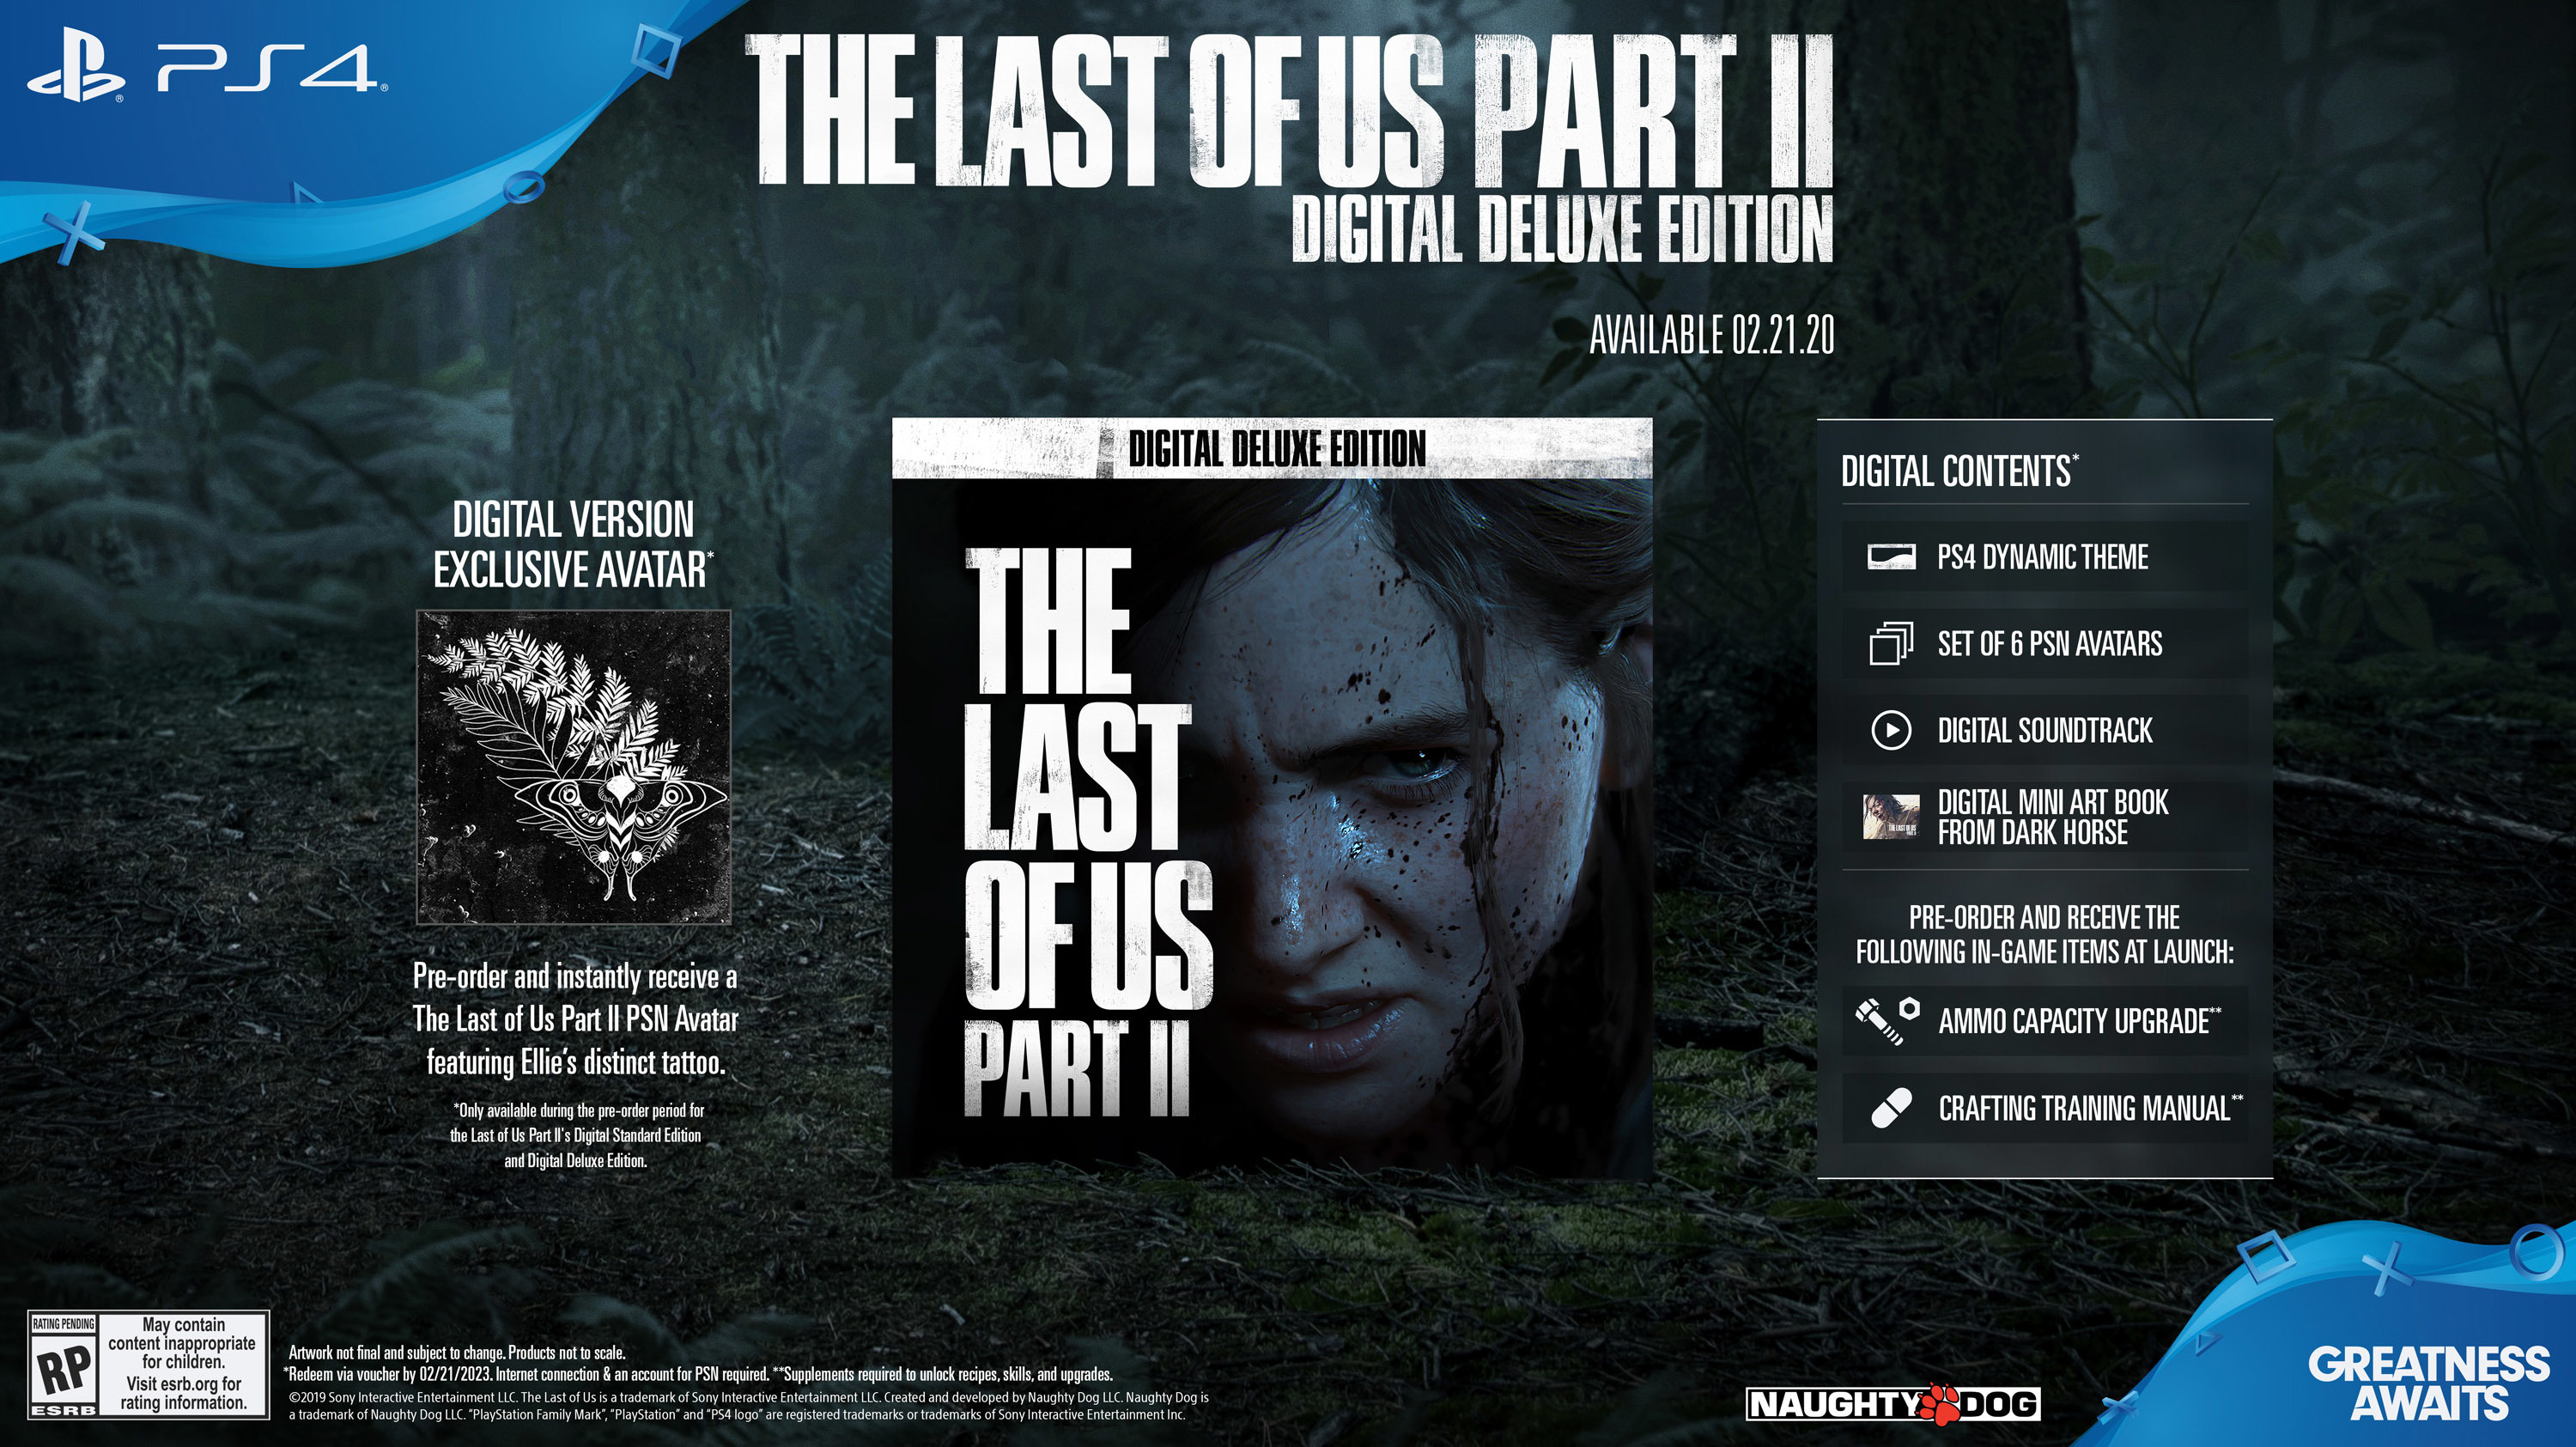 The Last of Us Part II Arrives May 29, 2020 - Image 1